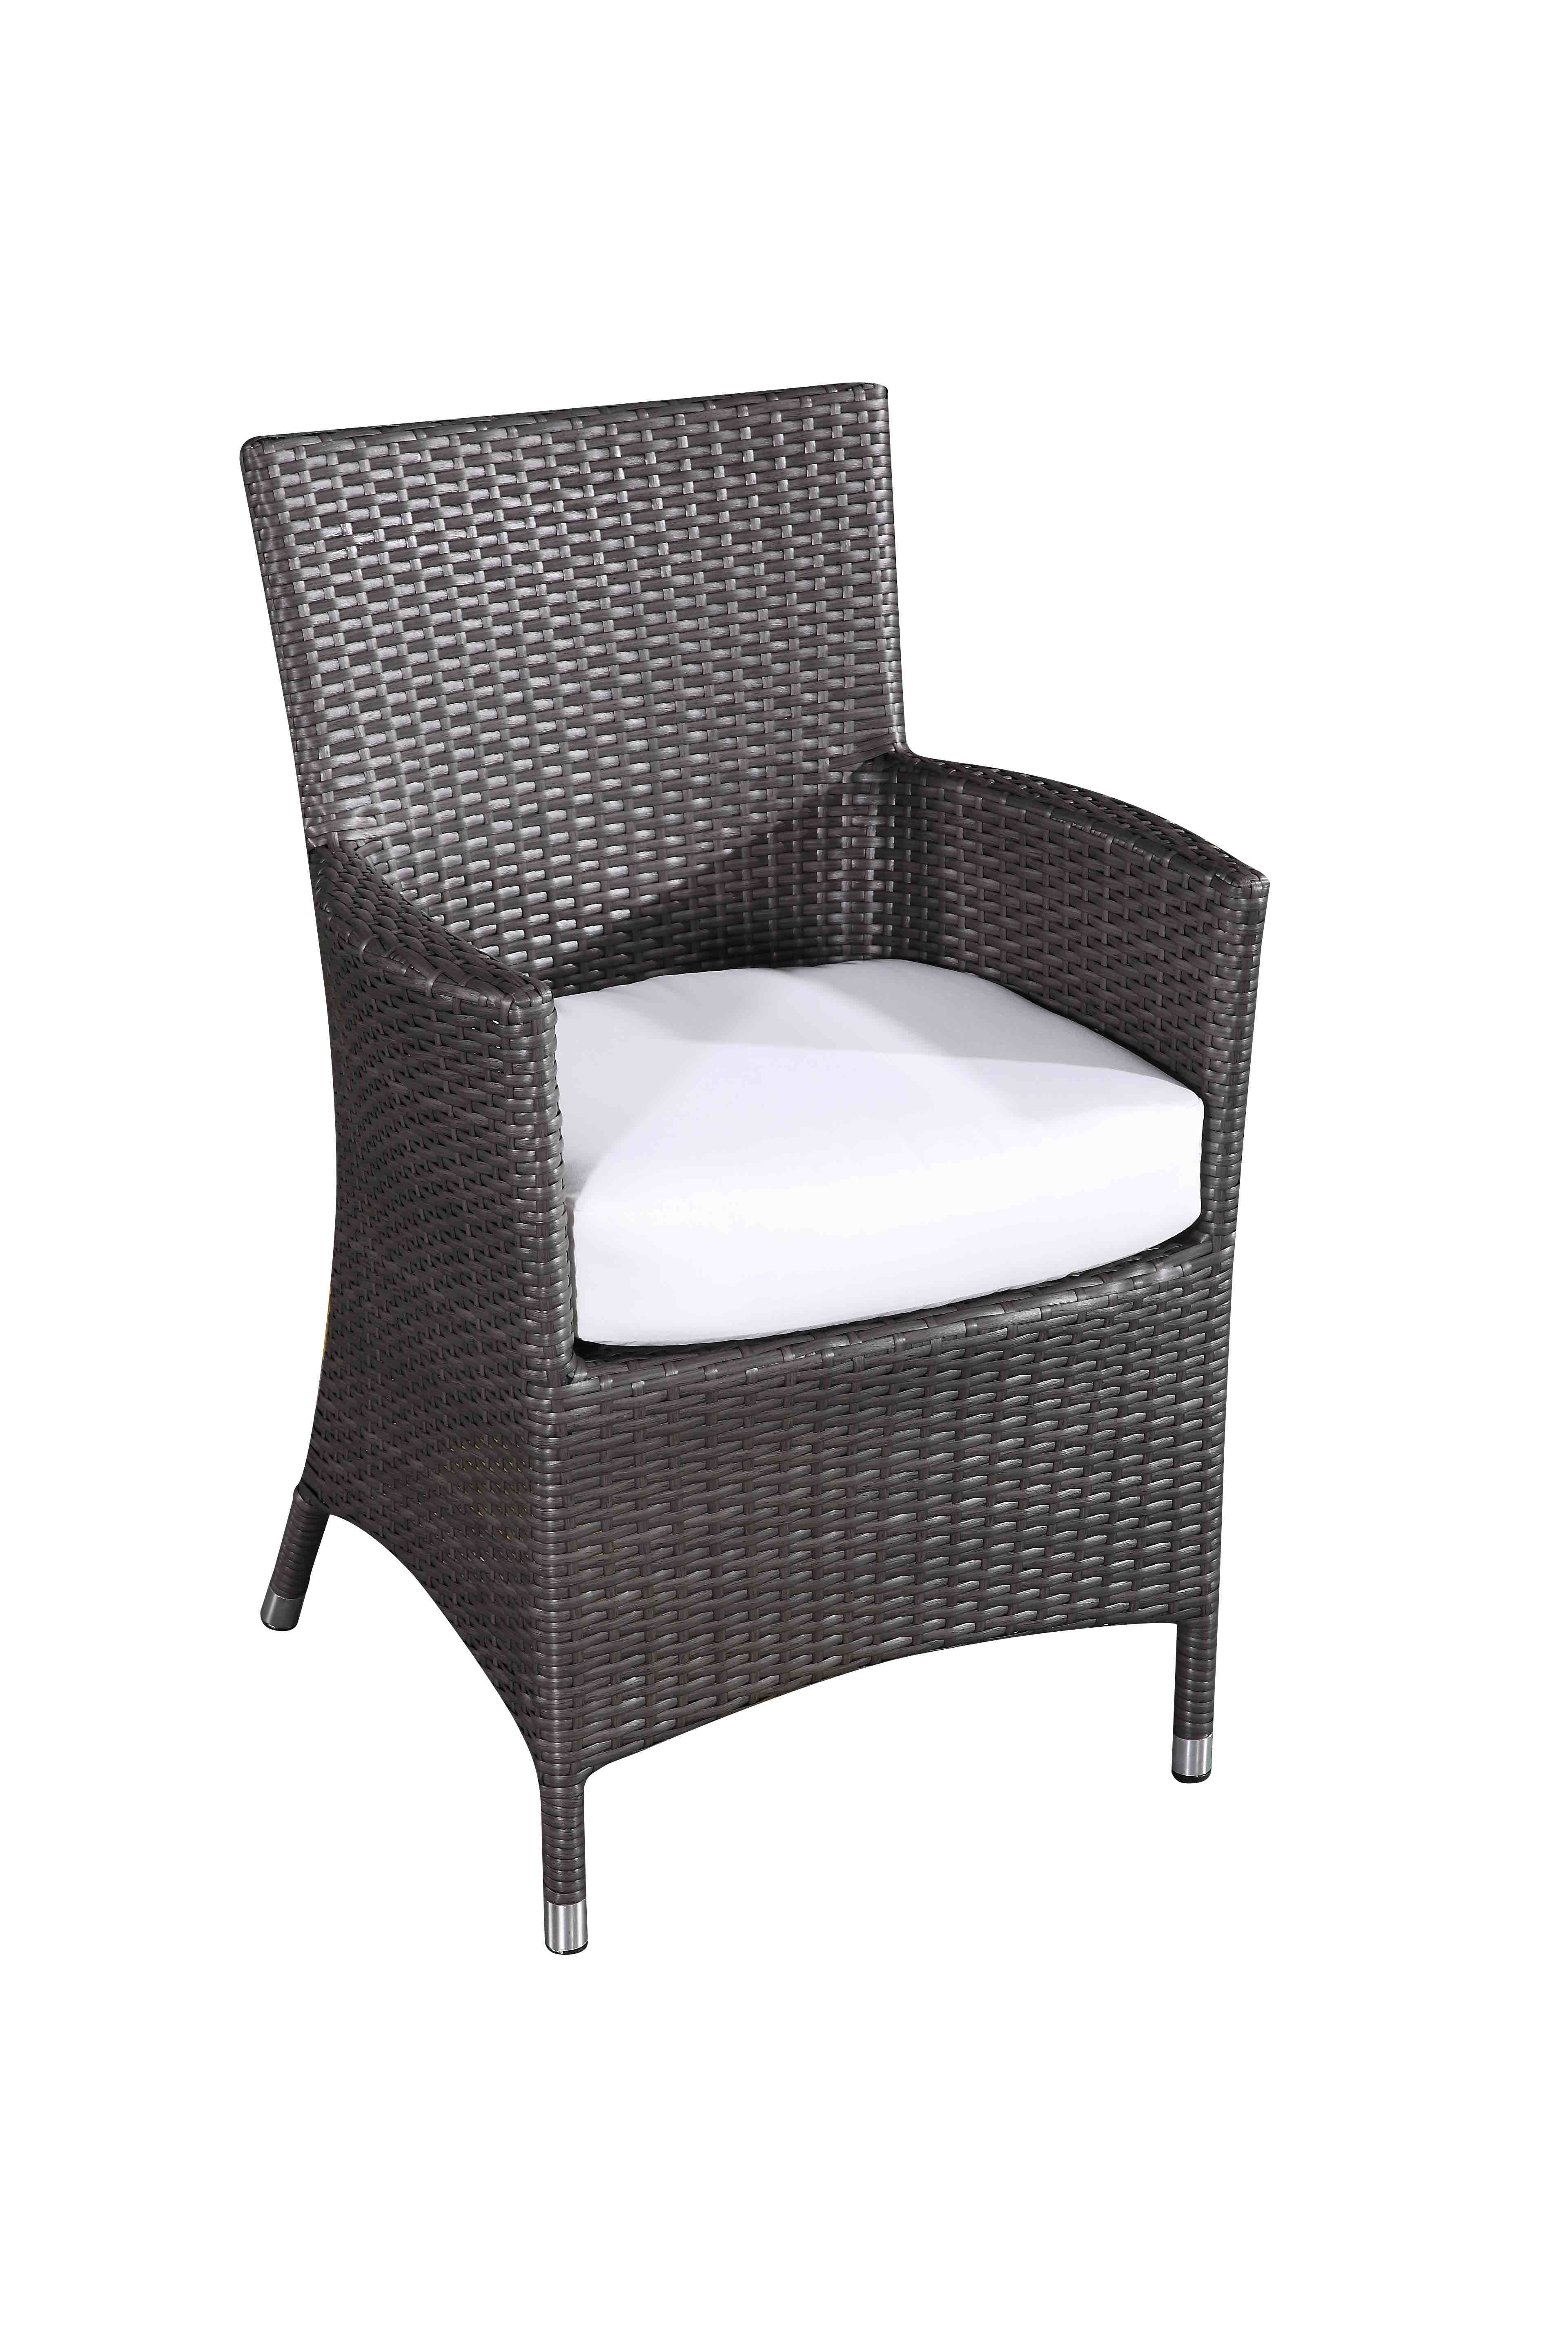 4 Chair Patio Set: Outdoor Wicker Patio Dining Set For 8